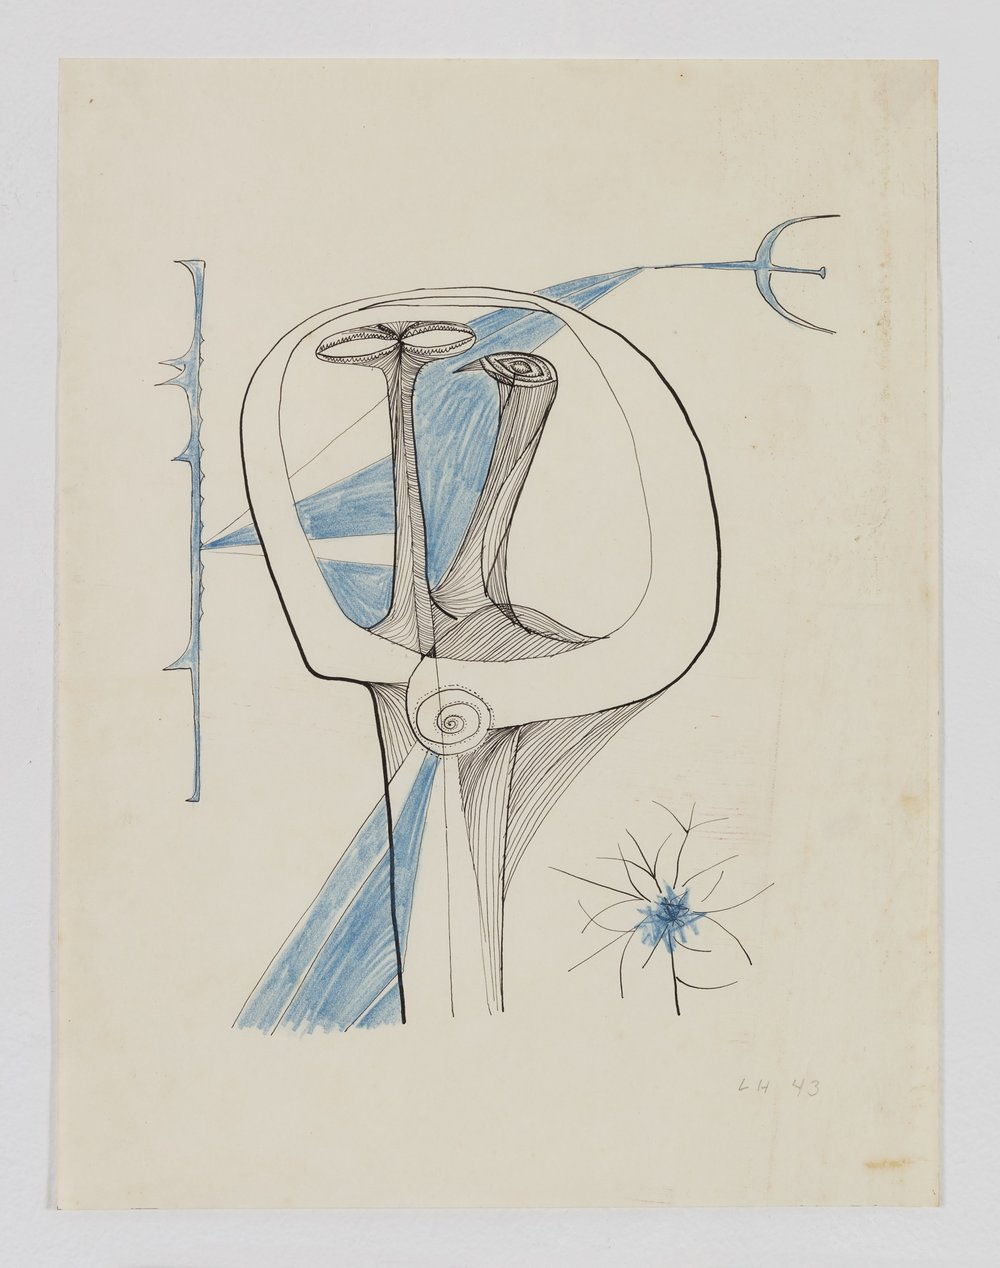 Luchita Hurtado, untitled, 1943, ink and colored pencil on paper, 12 x 9 inches (30.5 x 22.9 cm)